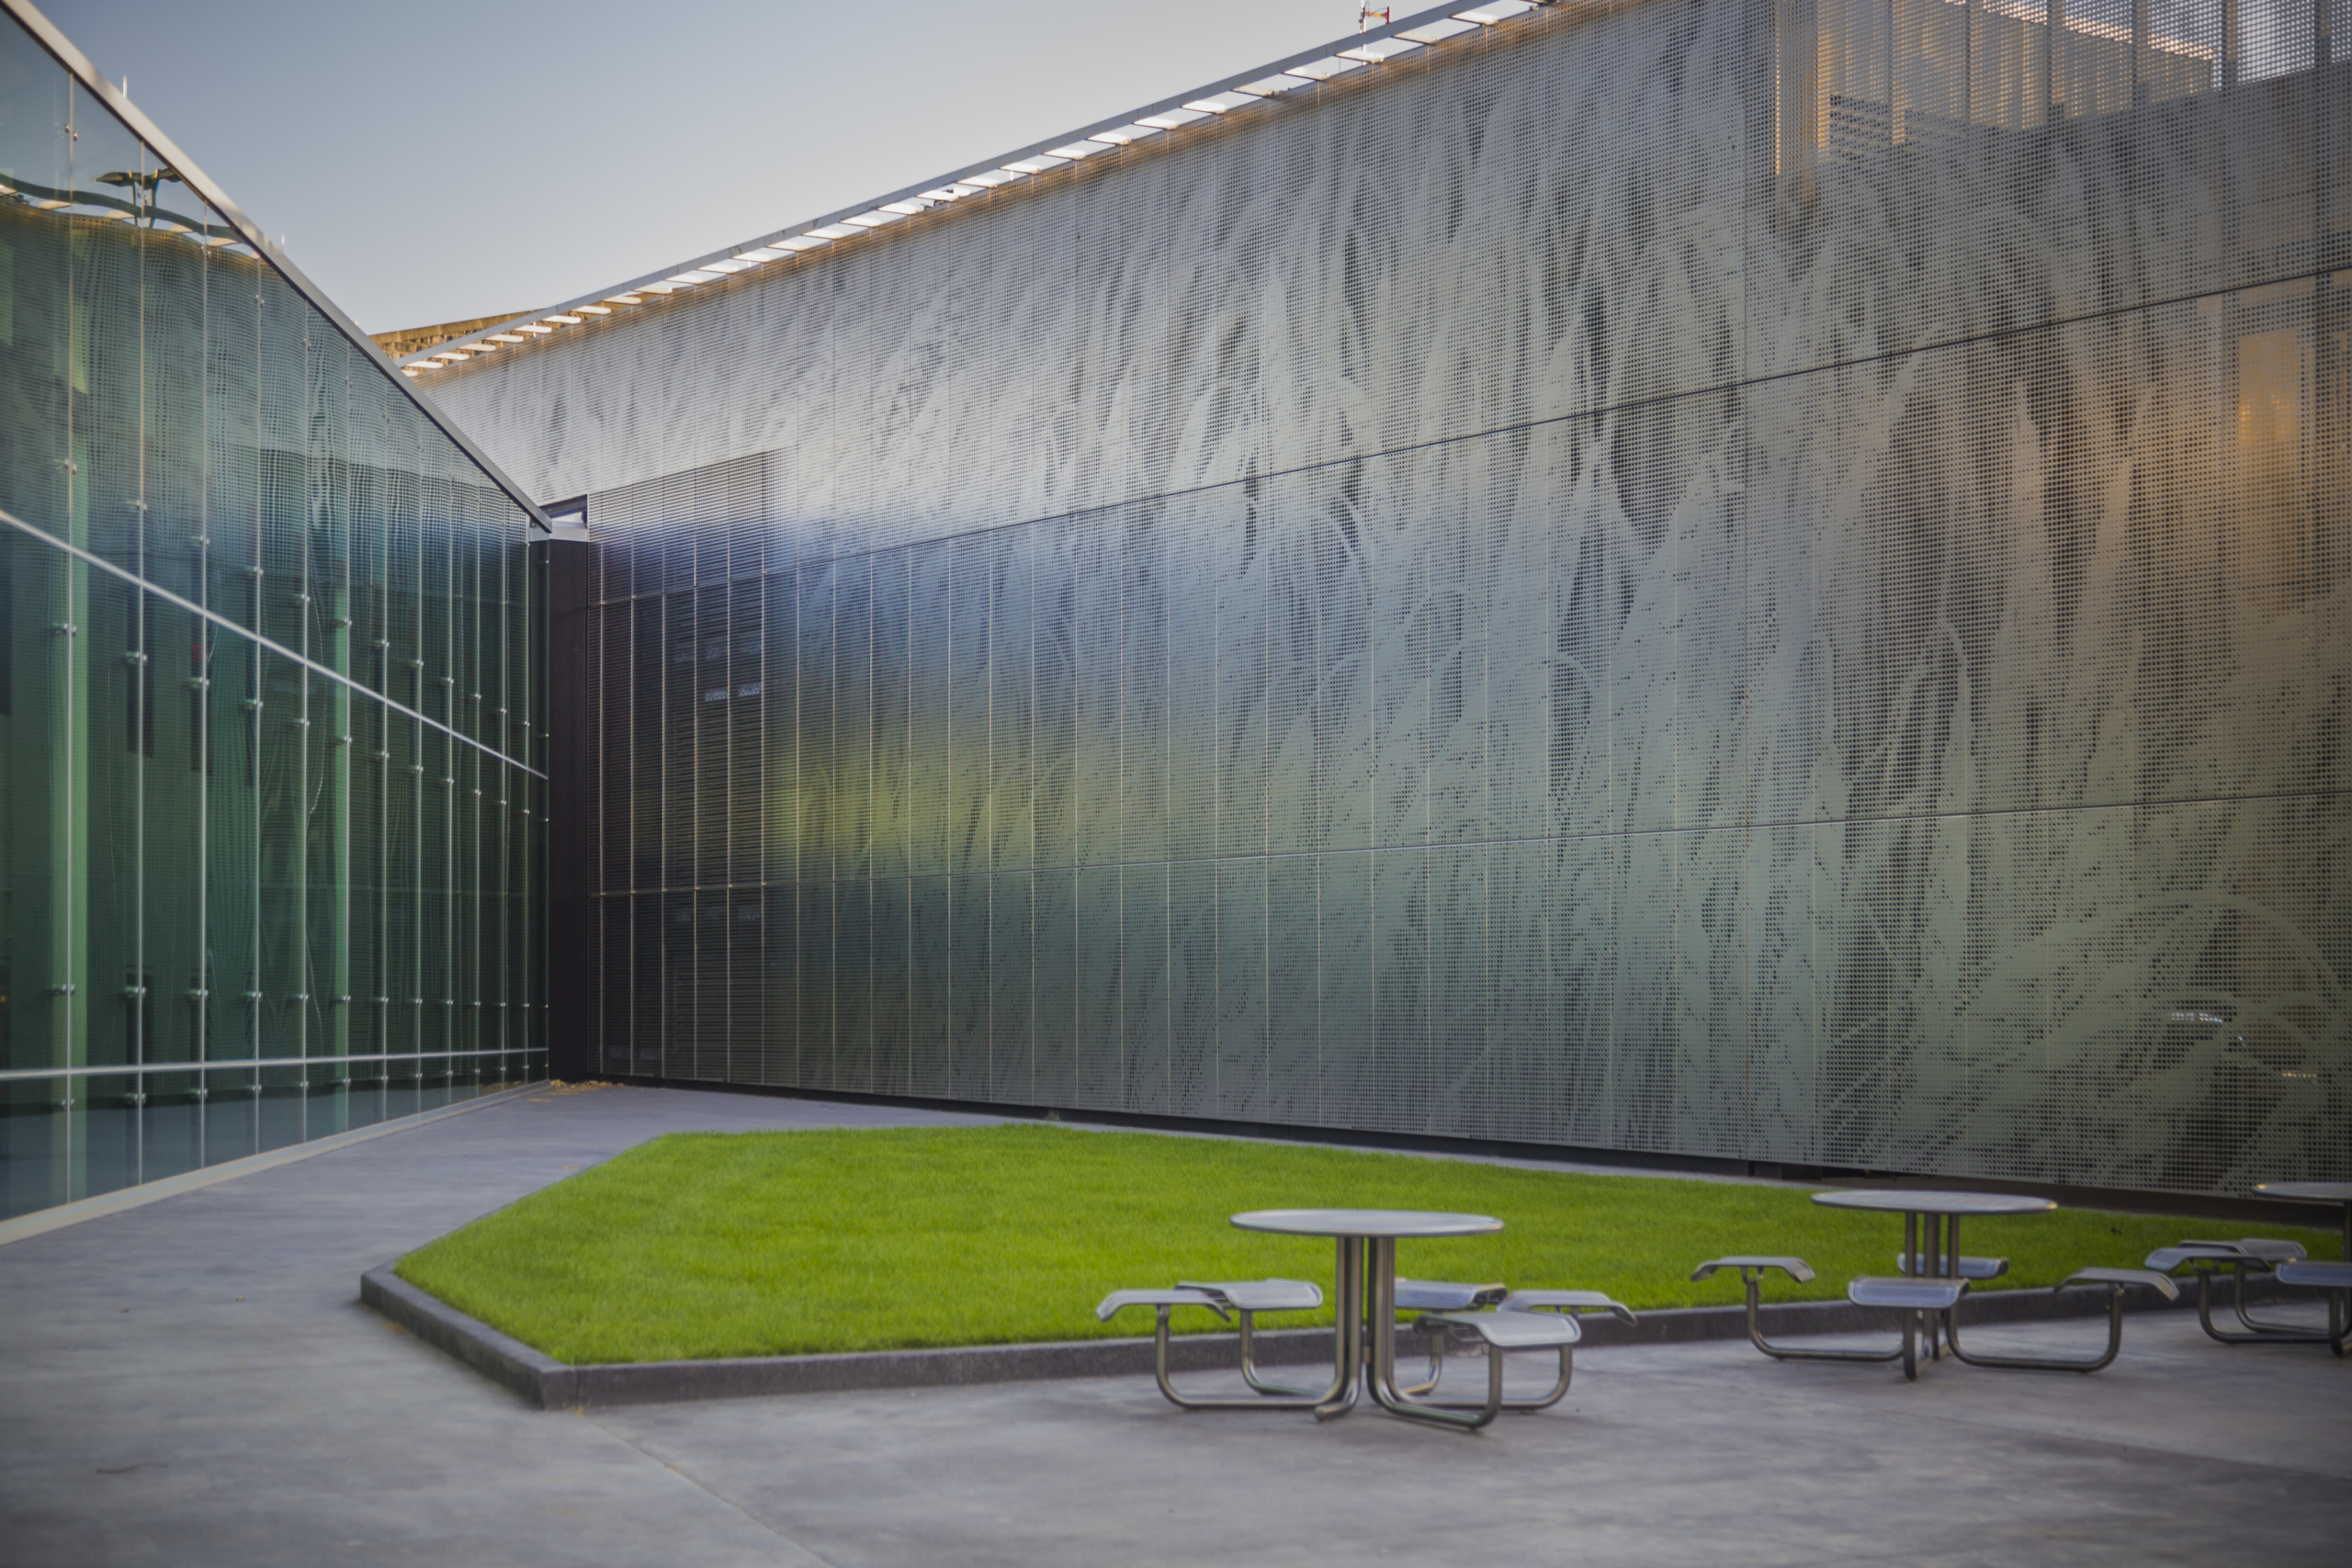 ImageWall was used on DeBruce Center in Lawrence, Kansas.